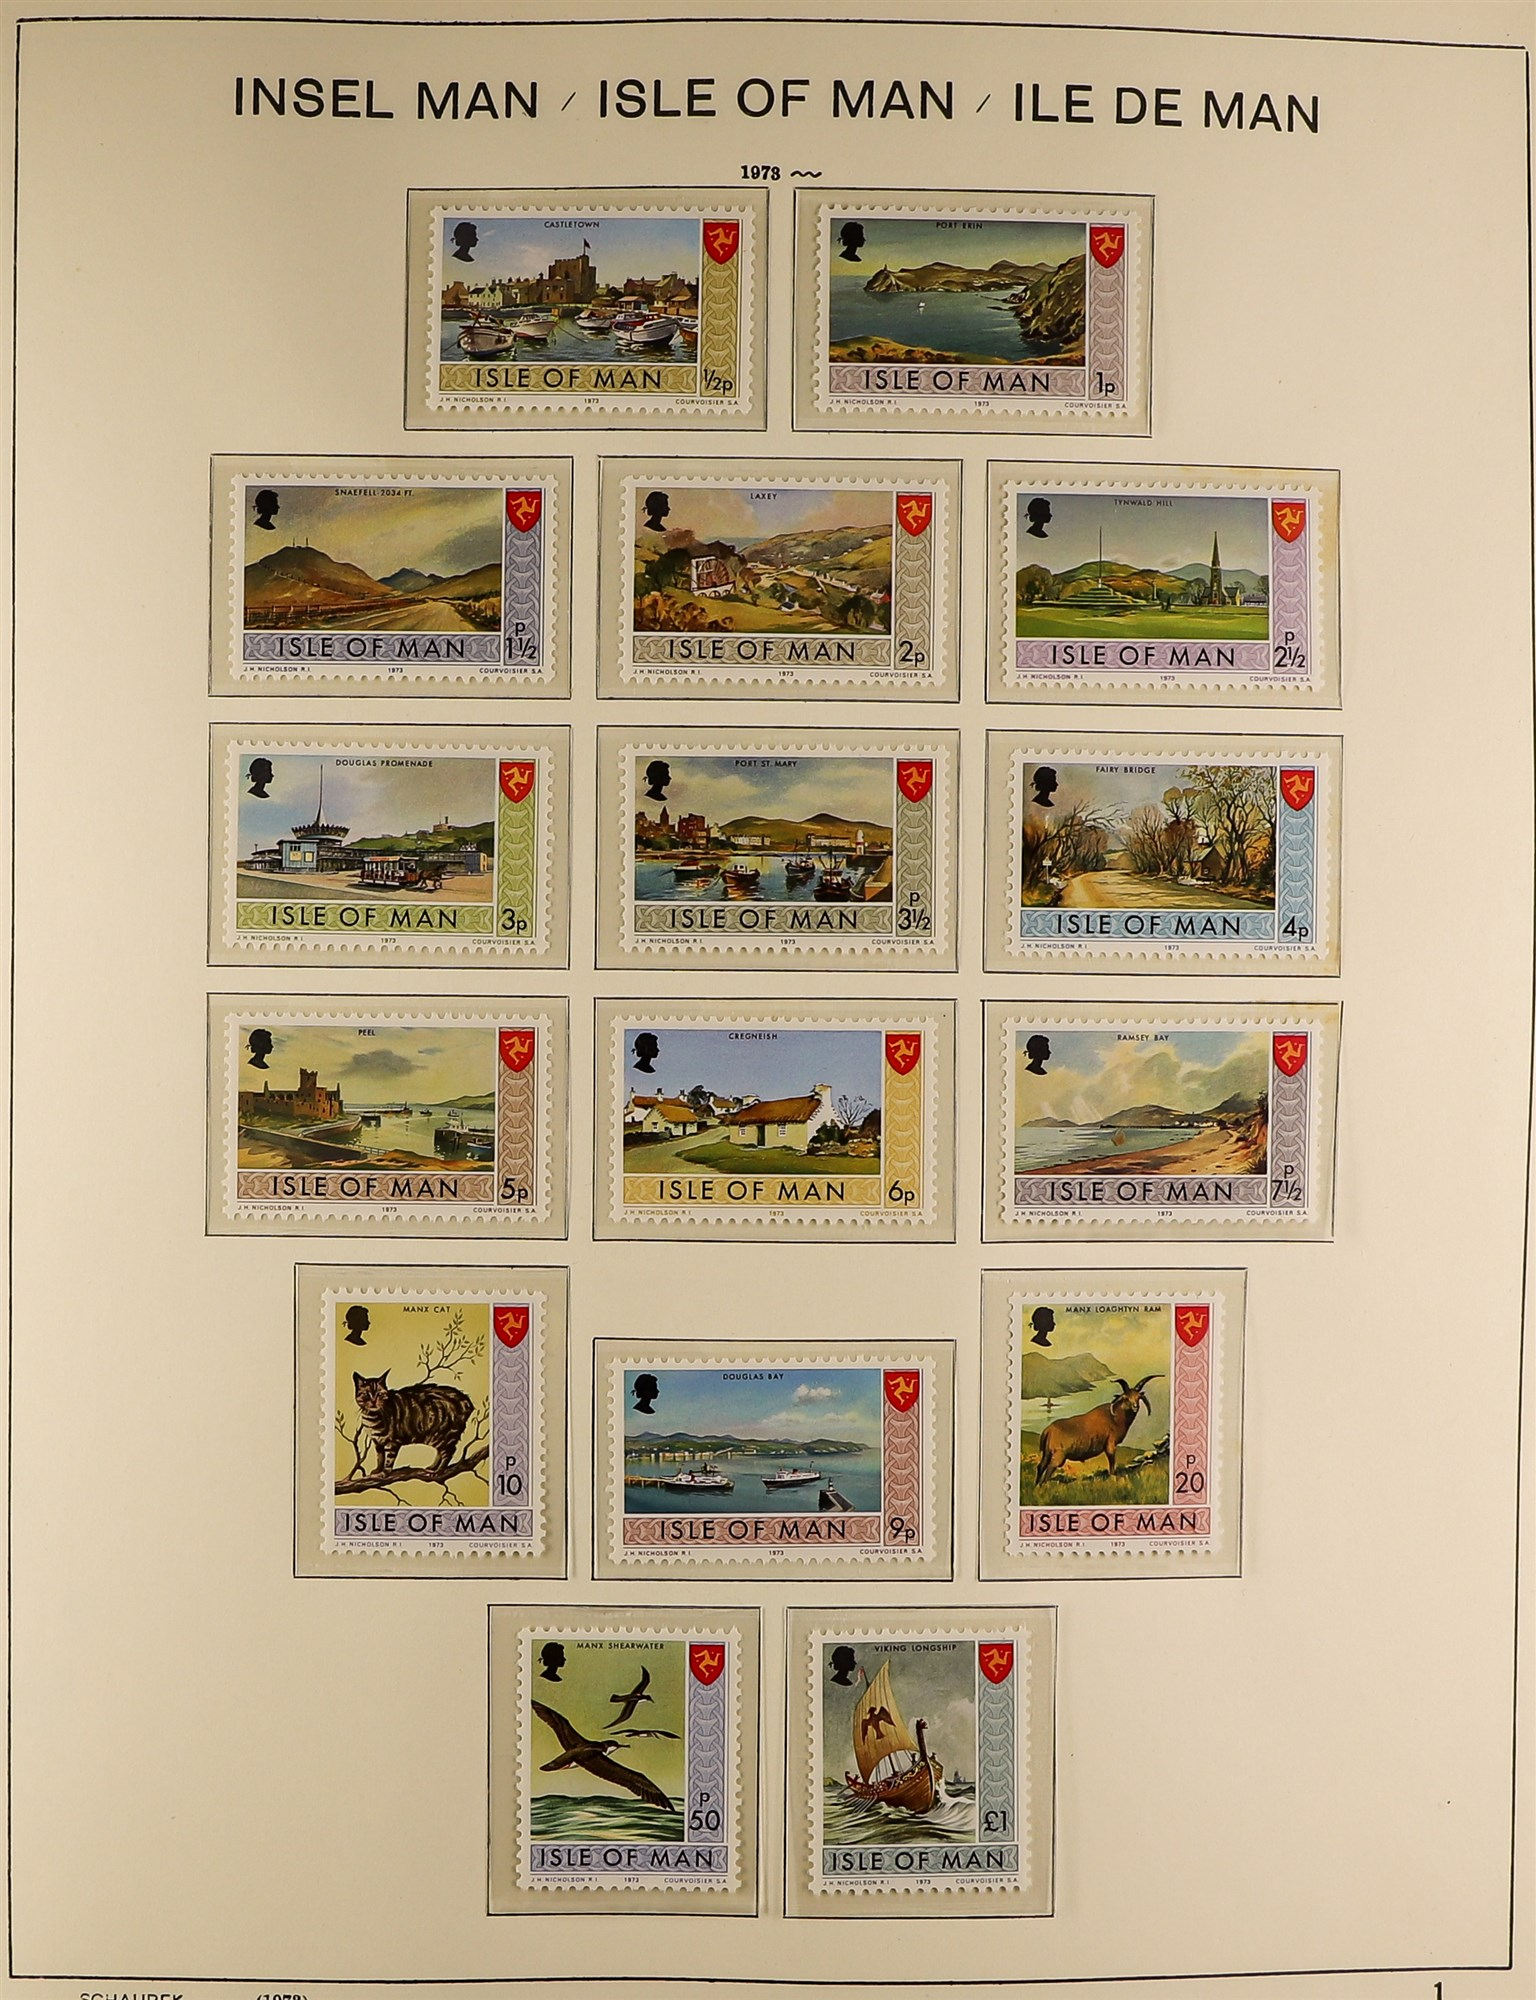 GB.ISLANDS CHANNEL ISLANDS AND ISLE OF MAN COLLECTIONS 1969-98 never hinged mint collections in - Image 5 of 6